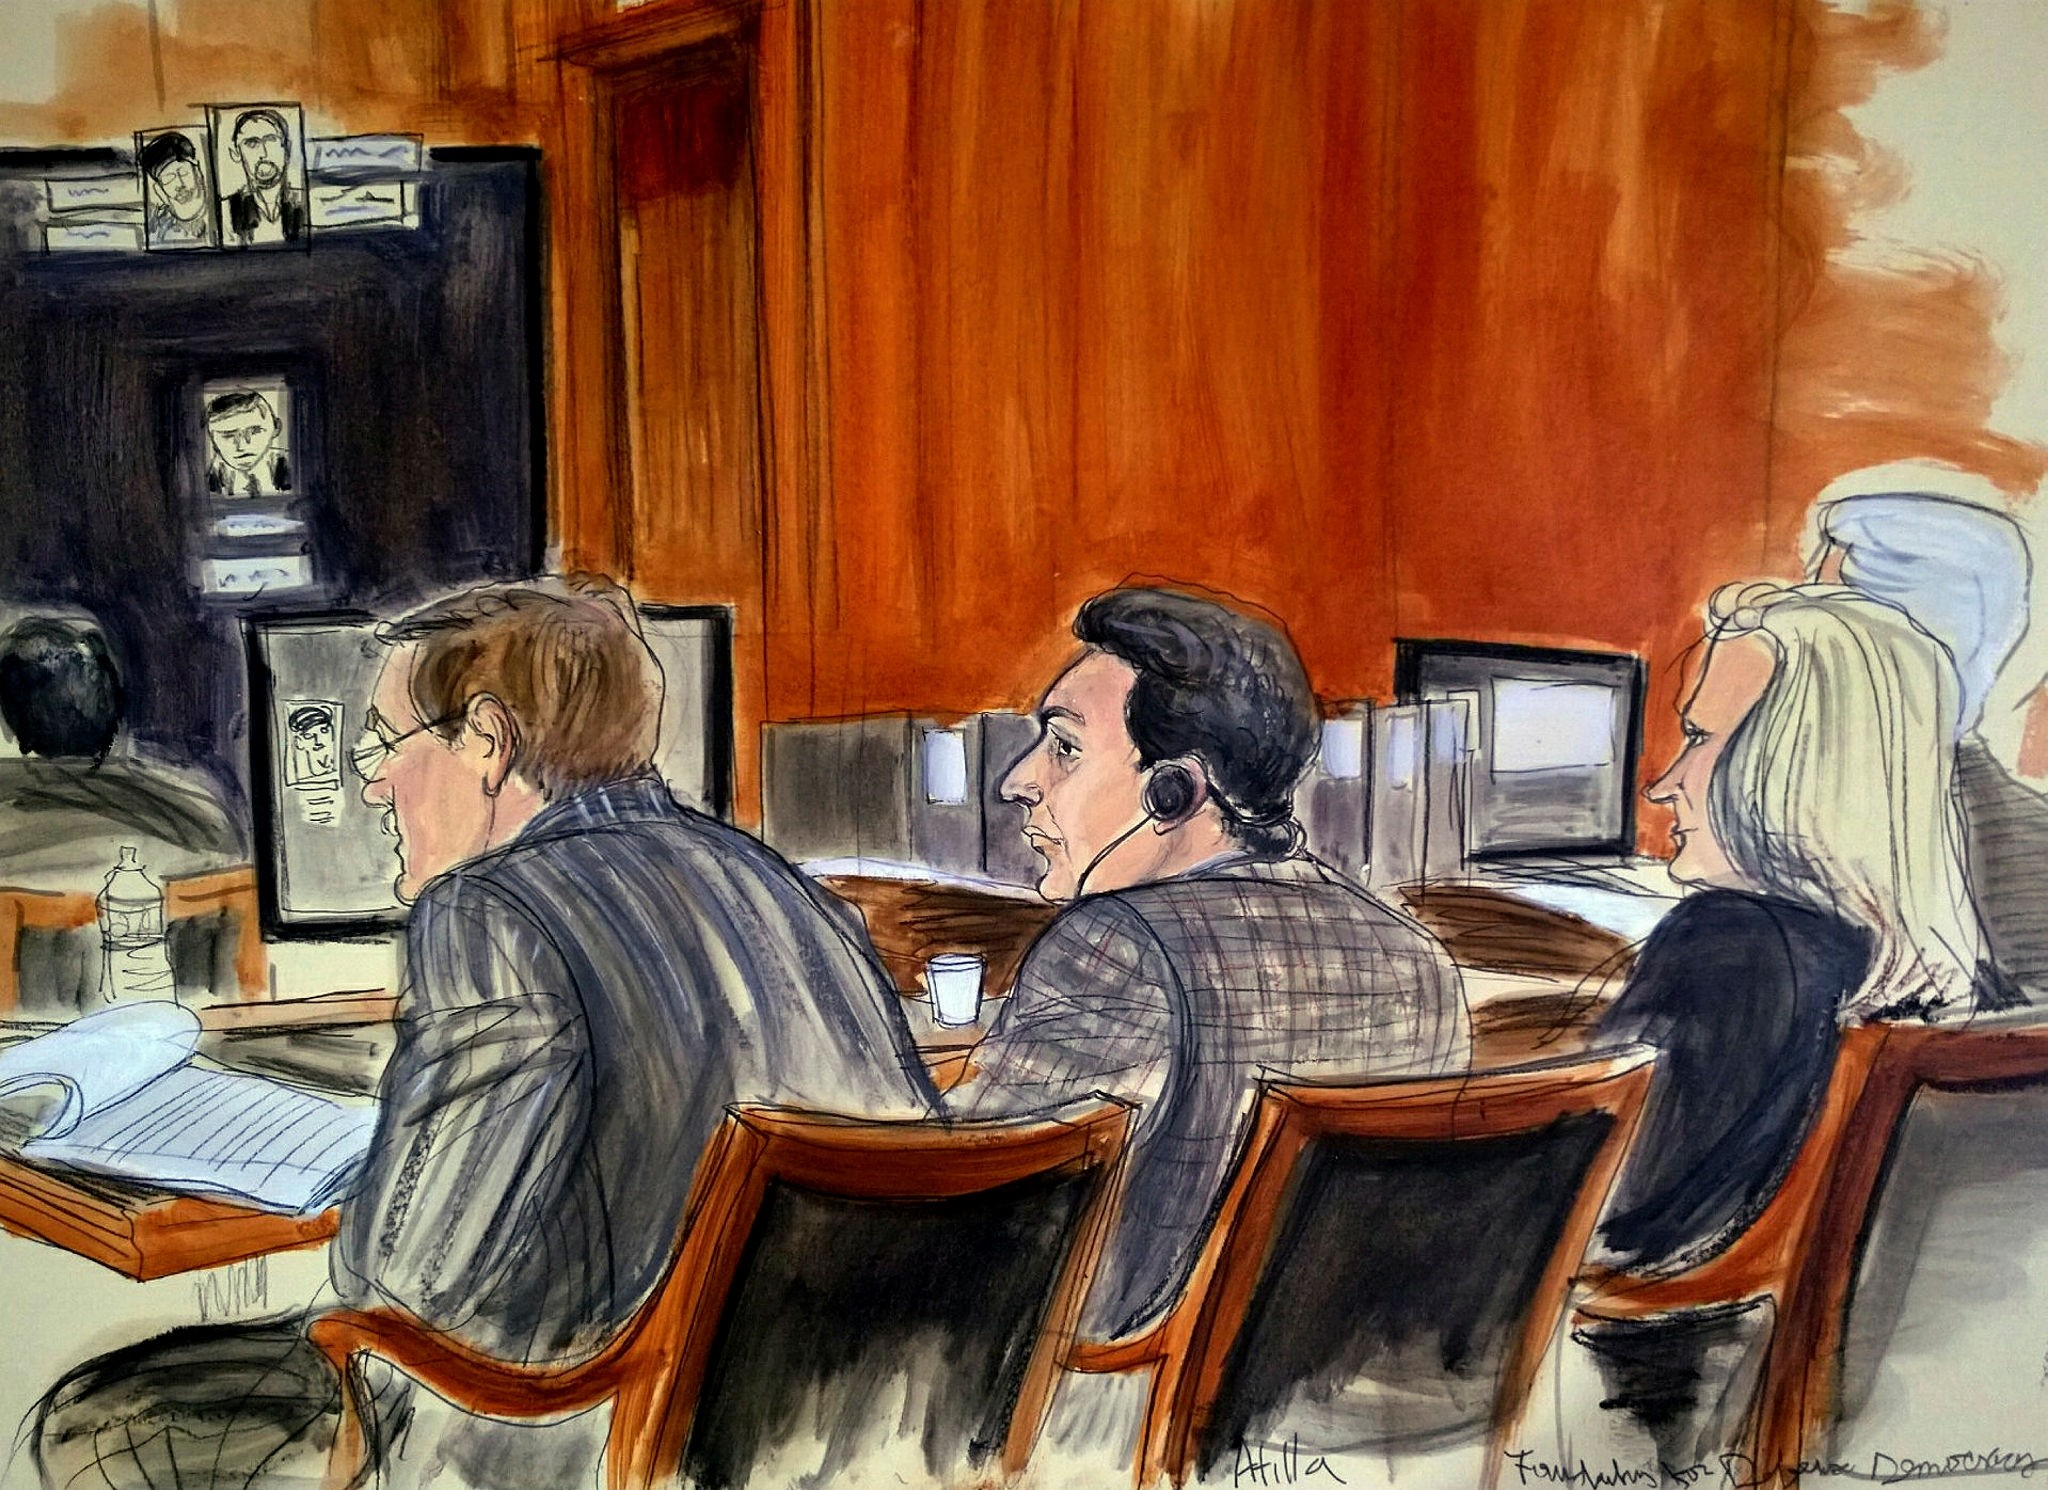 In this Nov. 28, 2017 court room sketch, defendant, Mehmet Hakan Atilla, center, listens to proceedings from the defense table, in New York (AP Photo)